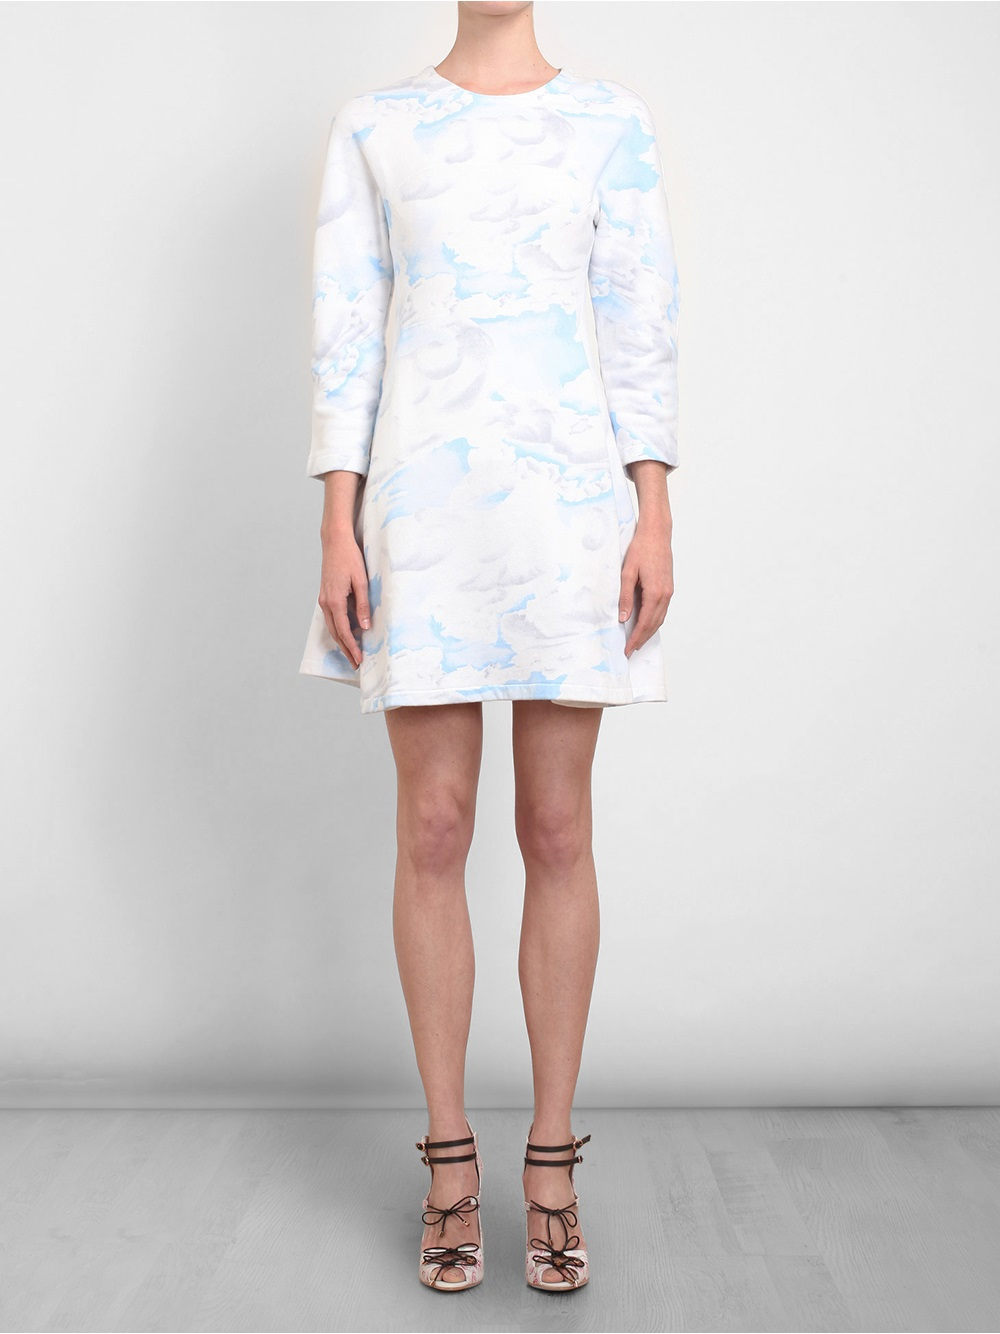 Kenzo Cloud Printed Cotton Sweater Dress in Blue | Lyst